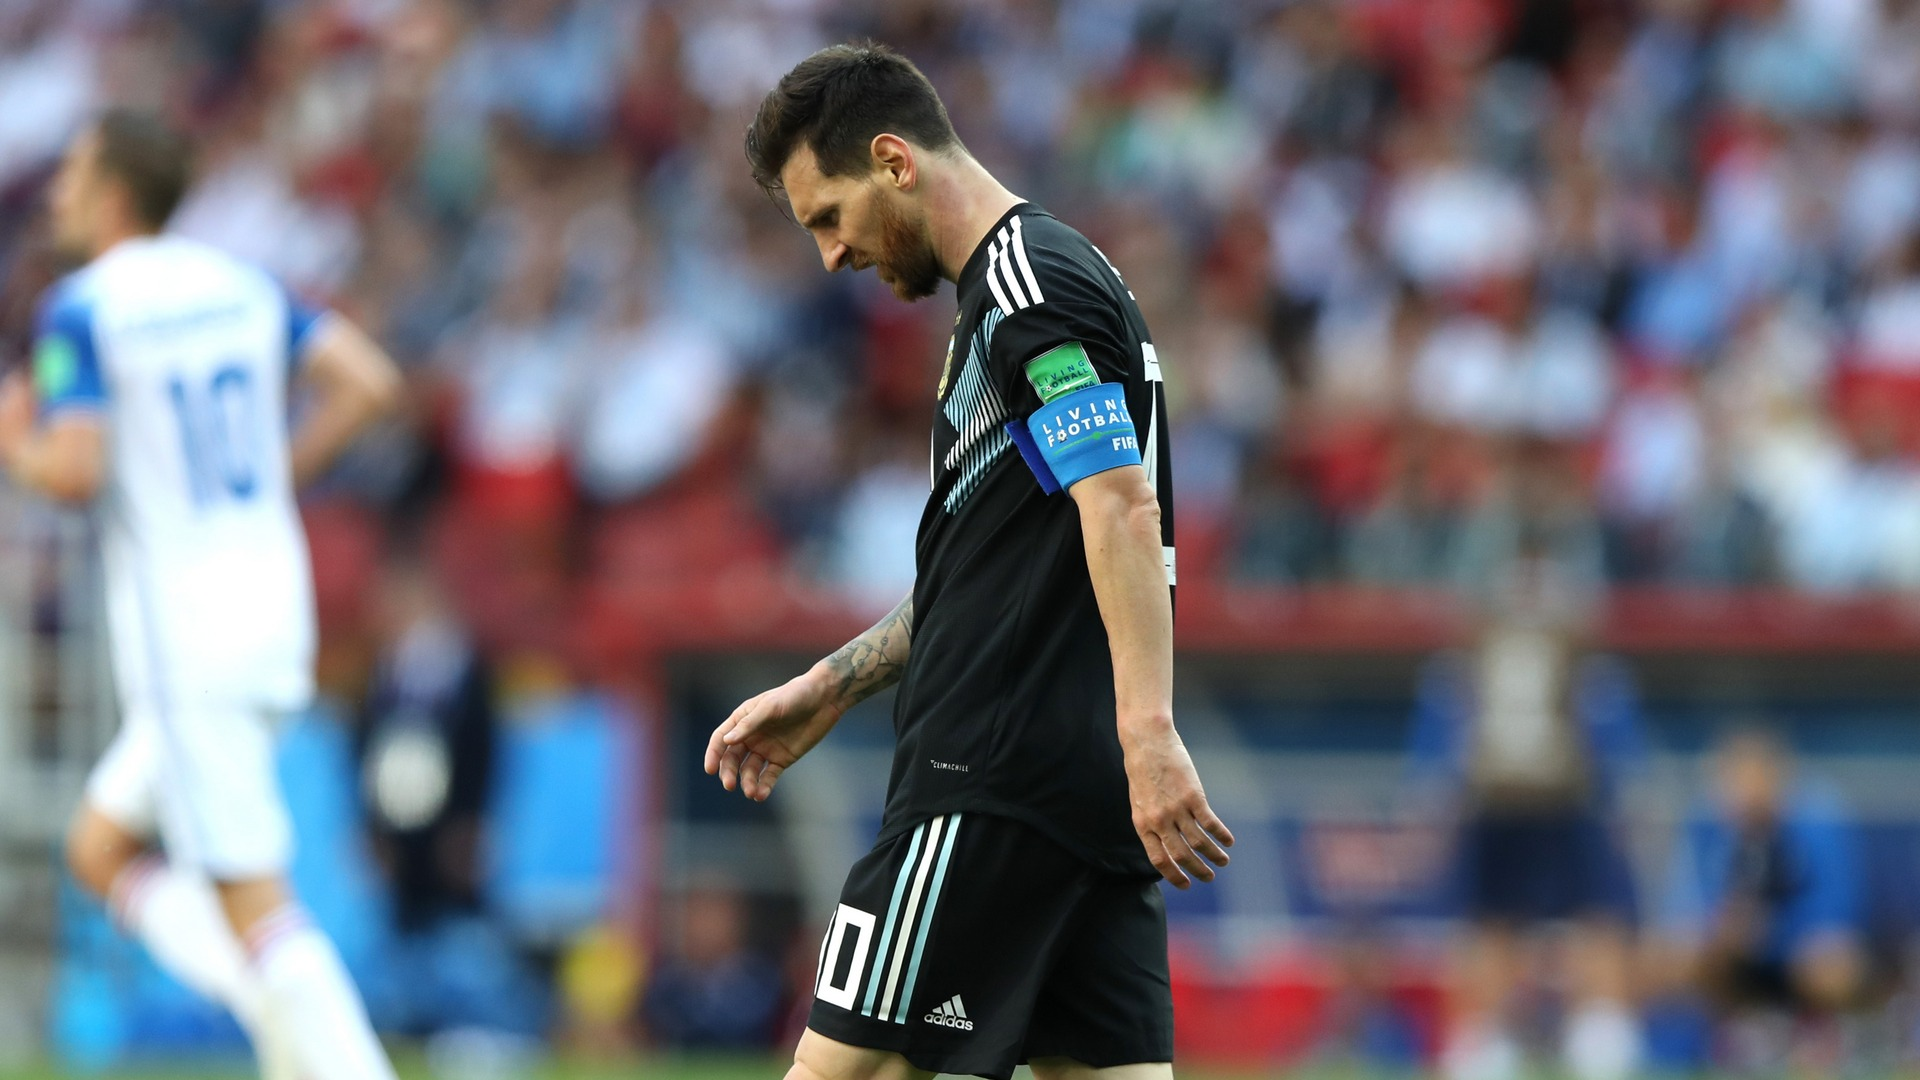 Argentina permutations: How can Messi &Co. reach Russia 2018 knockouts from Group D?